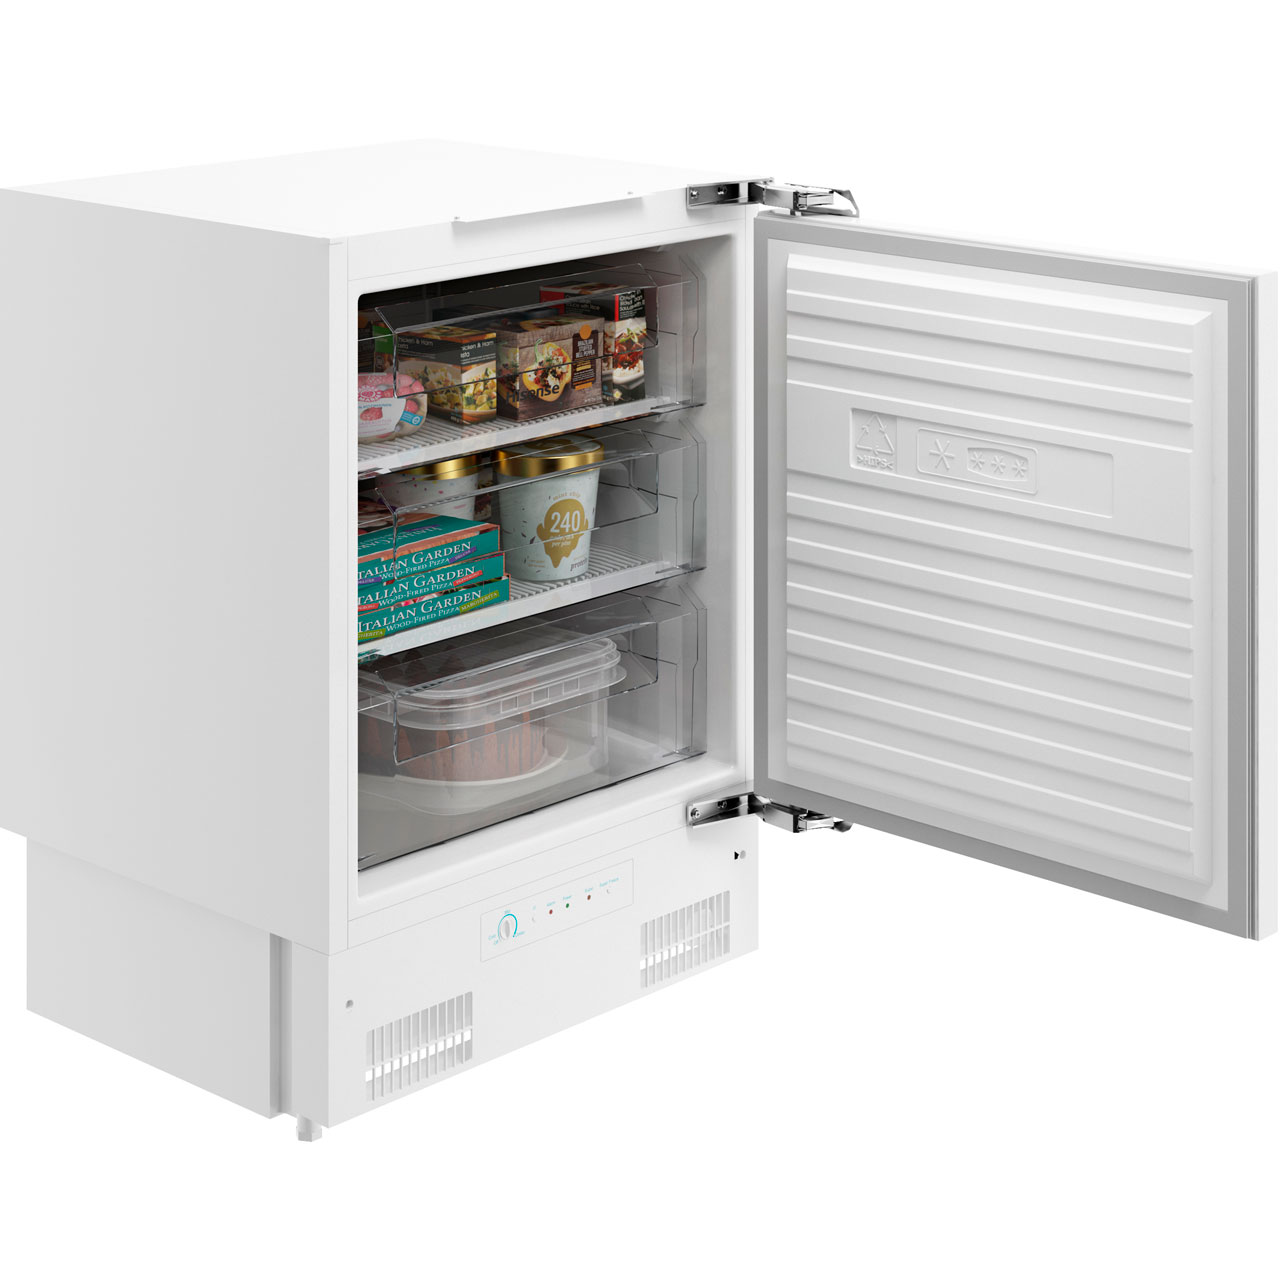 Hisense FUV126D4AW1 Integrated Under Counter Freezer review